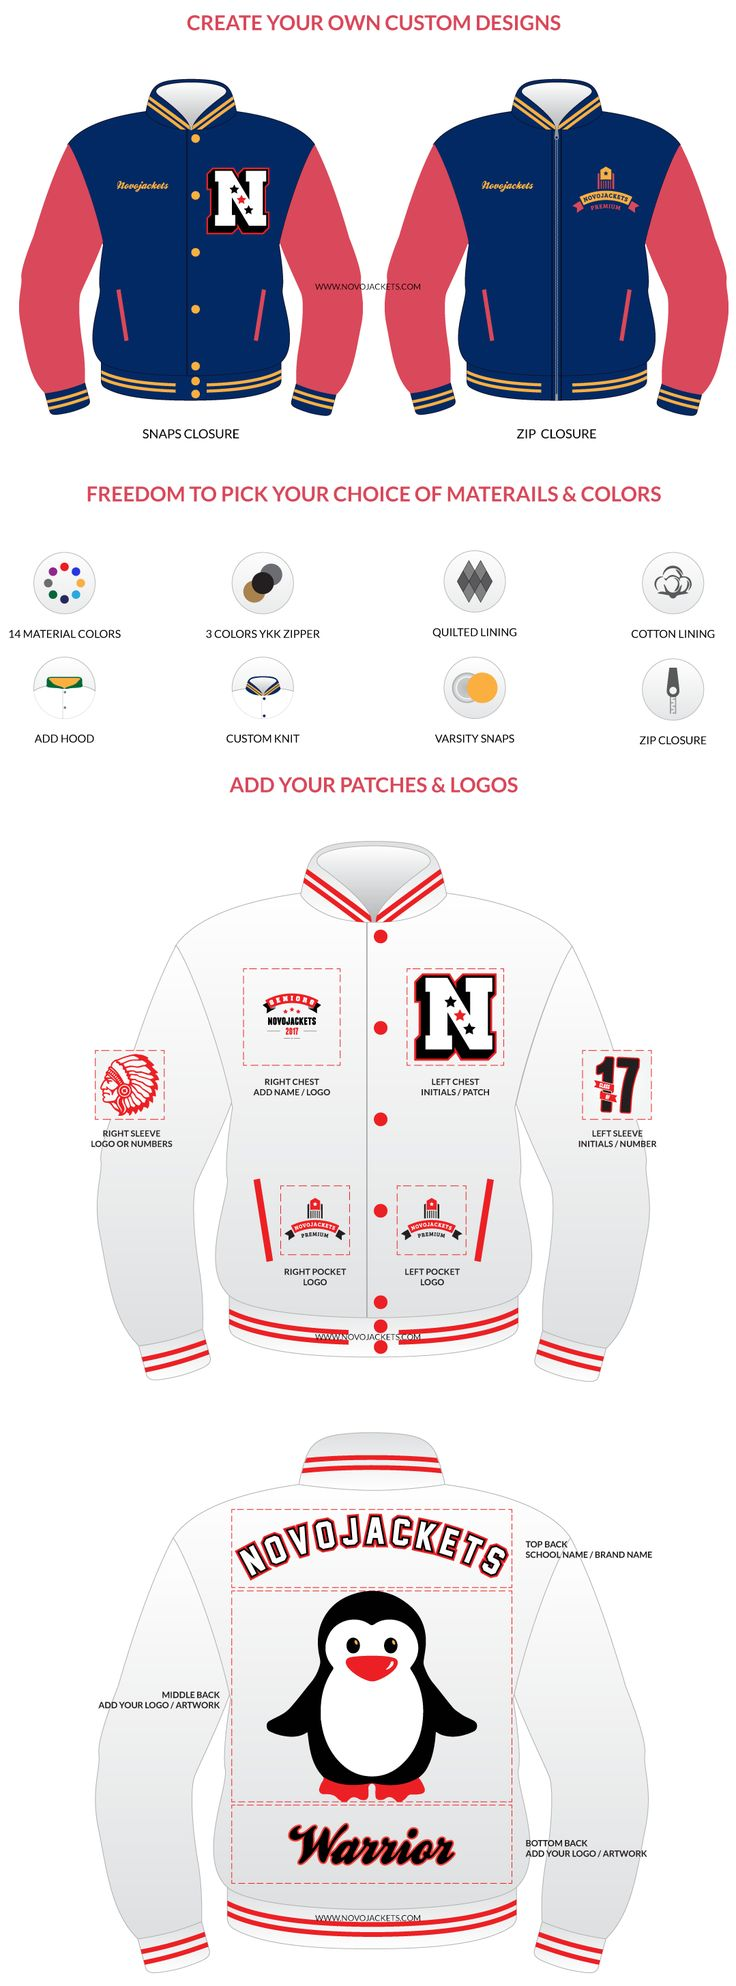 Made to measure custom bomber jacket cotton fleece, this men's bomber jacket is fresh off the style market this season. Need help surviving this winter? Do it in style with this cotton fleece custom  #custom #letterman #varisty #jacket #jackets #highschool #leather #wool #coat #men #women #girl #fashion #customizable #customized #jackets #bomber